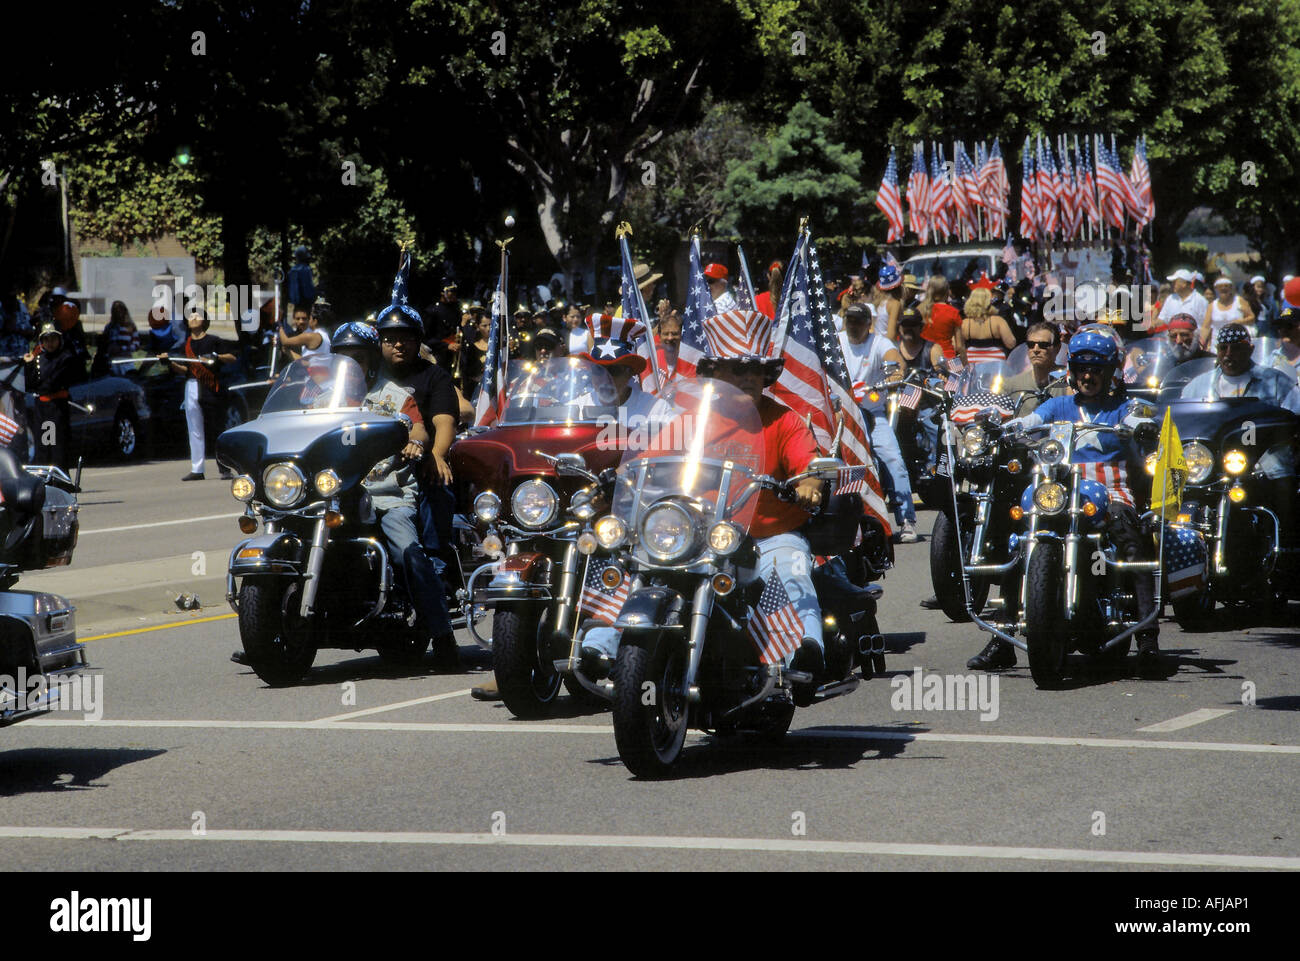 Harley Davidson Parade: Wanted To Ride In The Parade Today But The Route Is 11